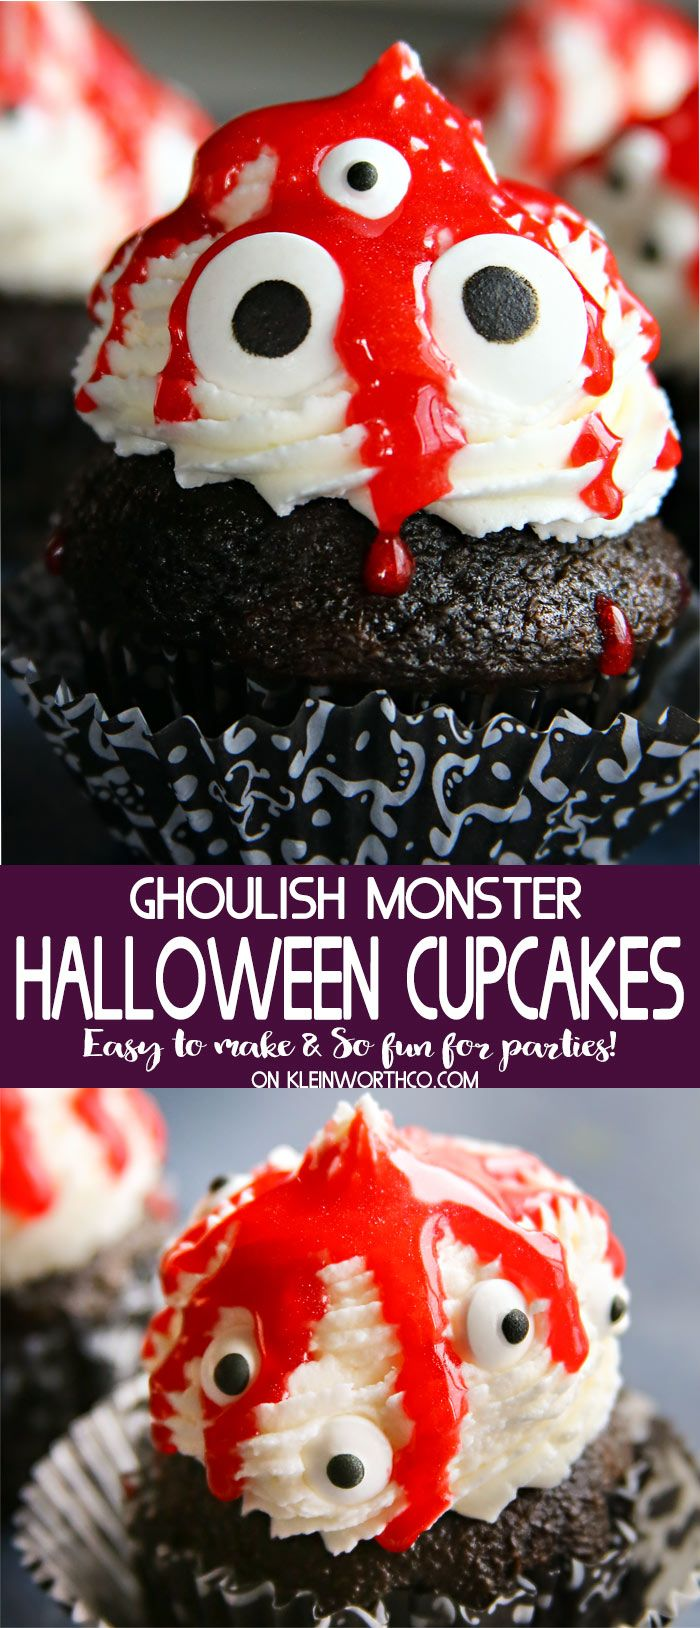 best 20 halloween cupcakes ideas on pinterest halloween cupcakes decoration spooky treats and halloween cupcakes easy - Scary Halloween Cupcake Ideas